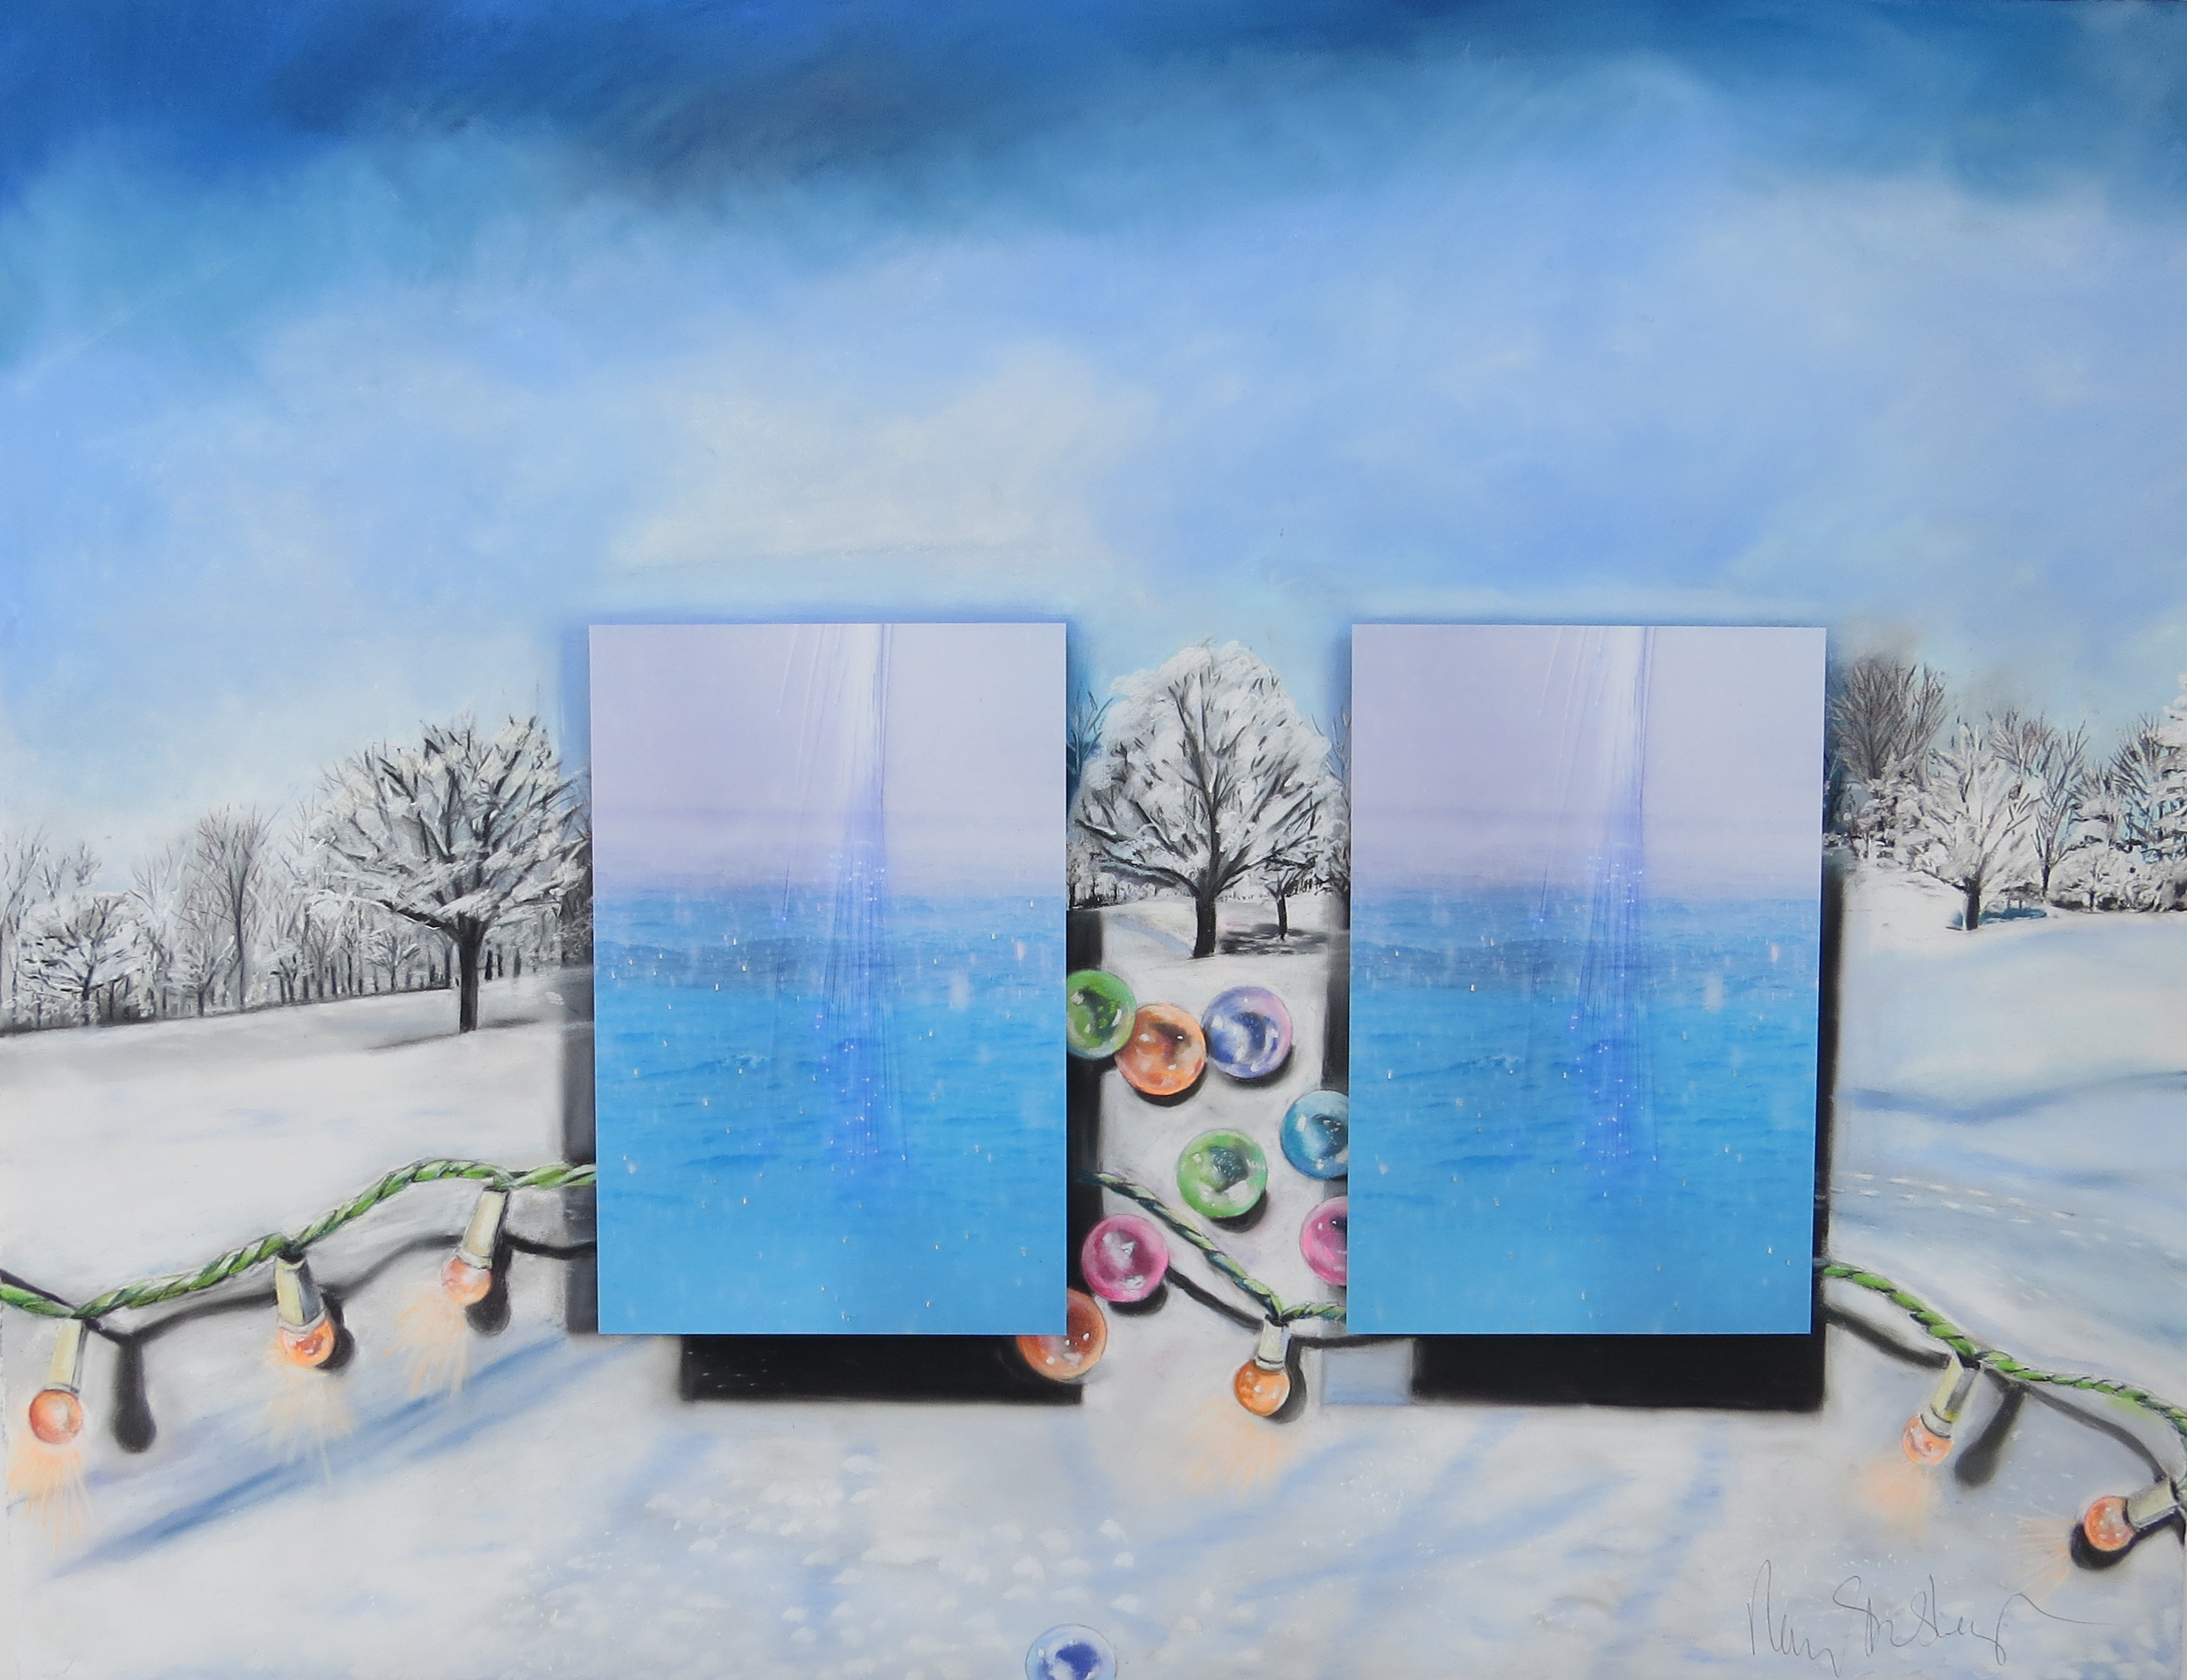 The Light and Sparkle of Winter  37 x 50, pastel on paper, photographs